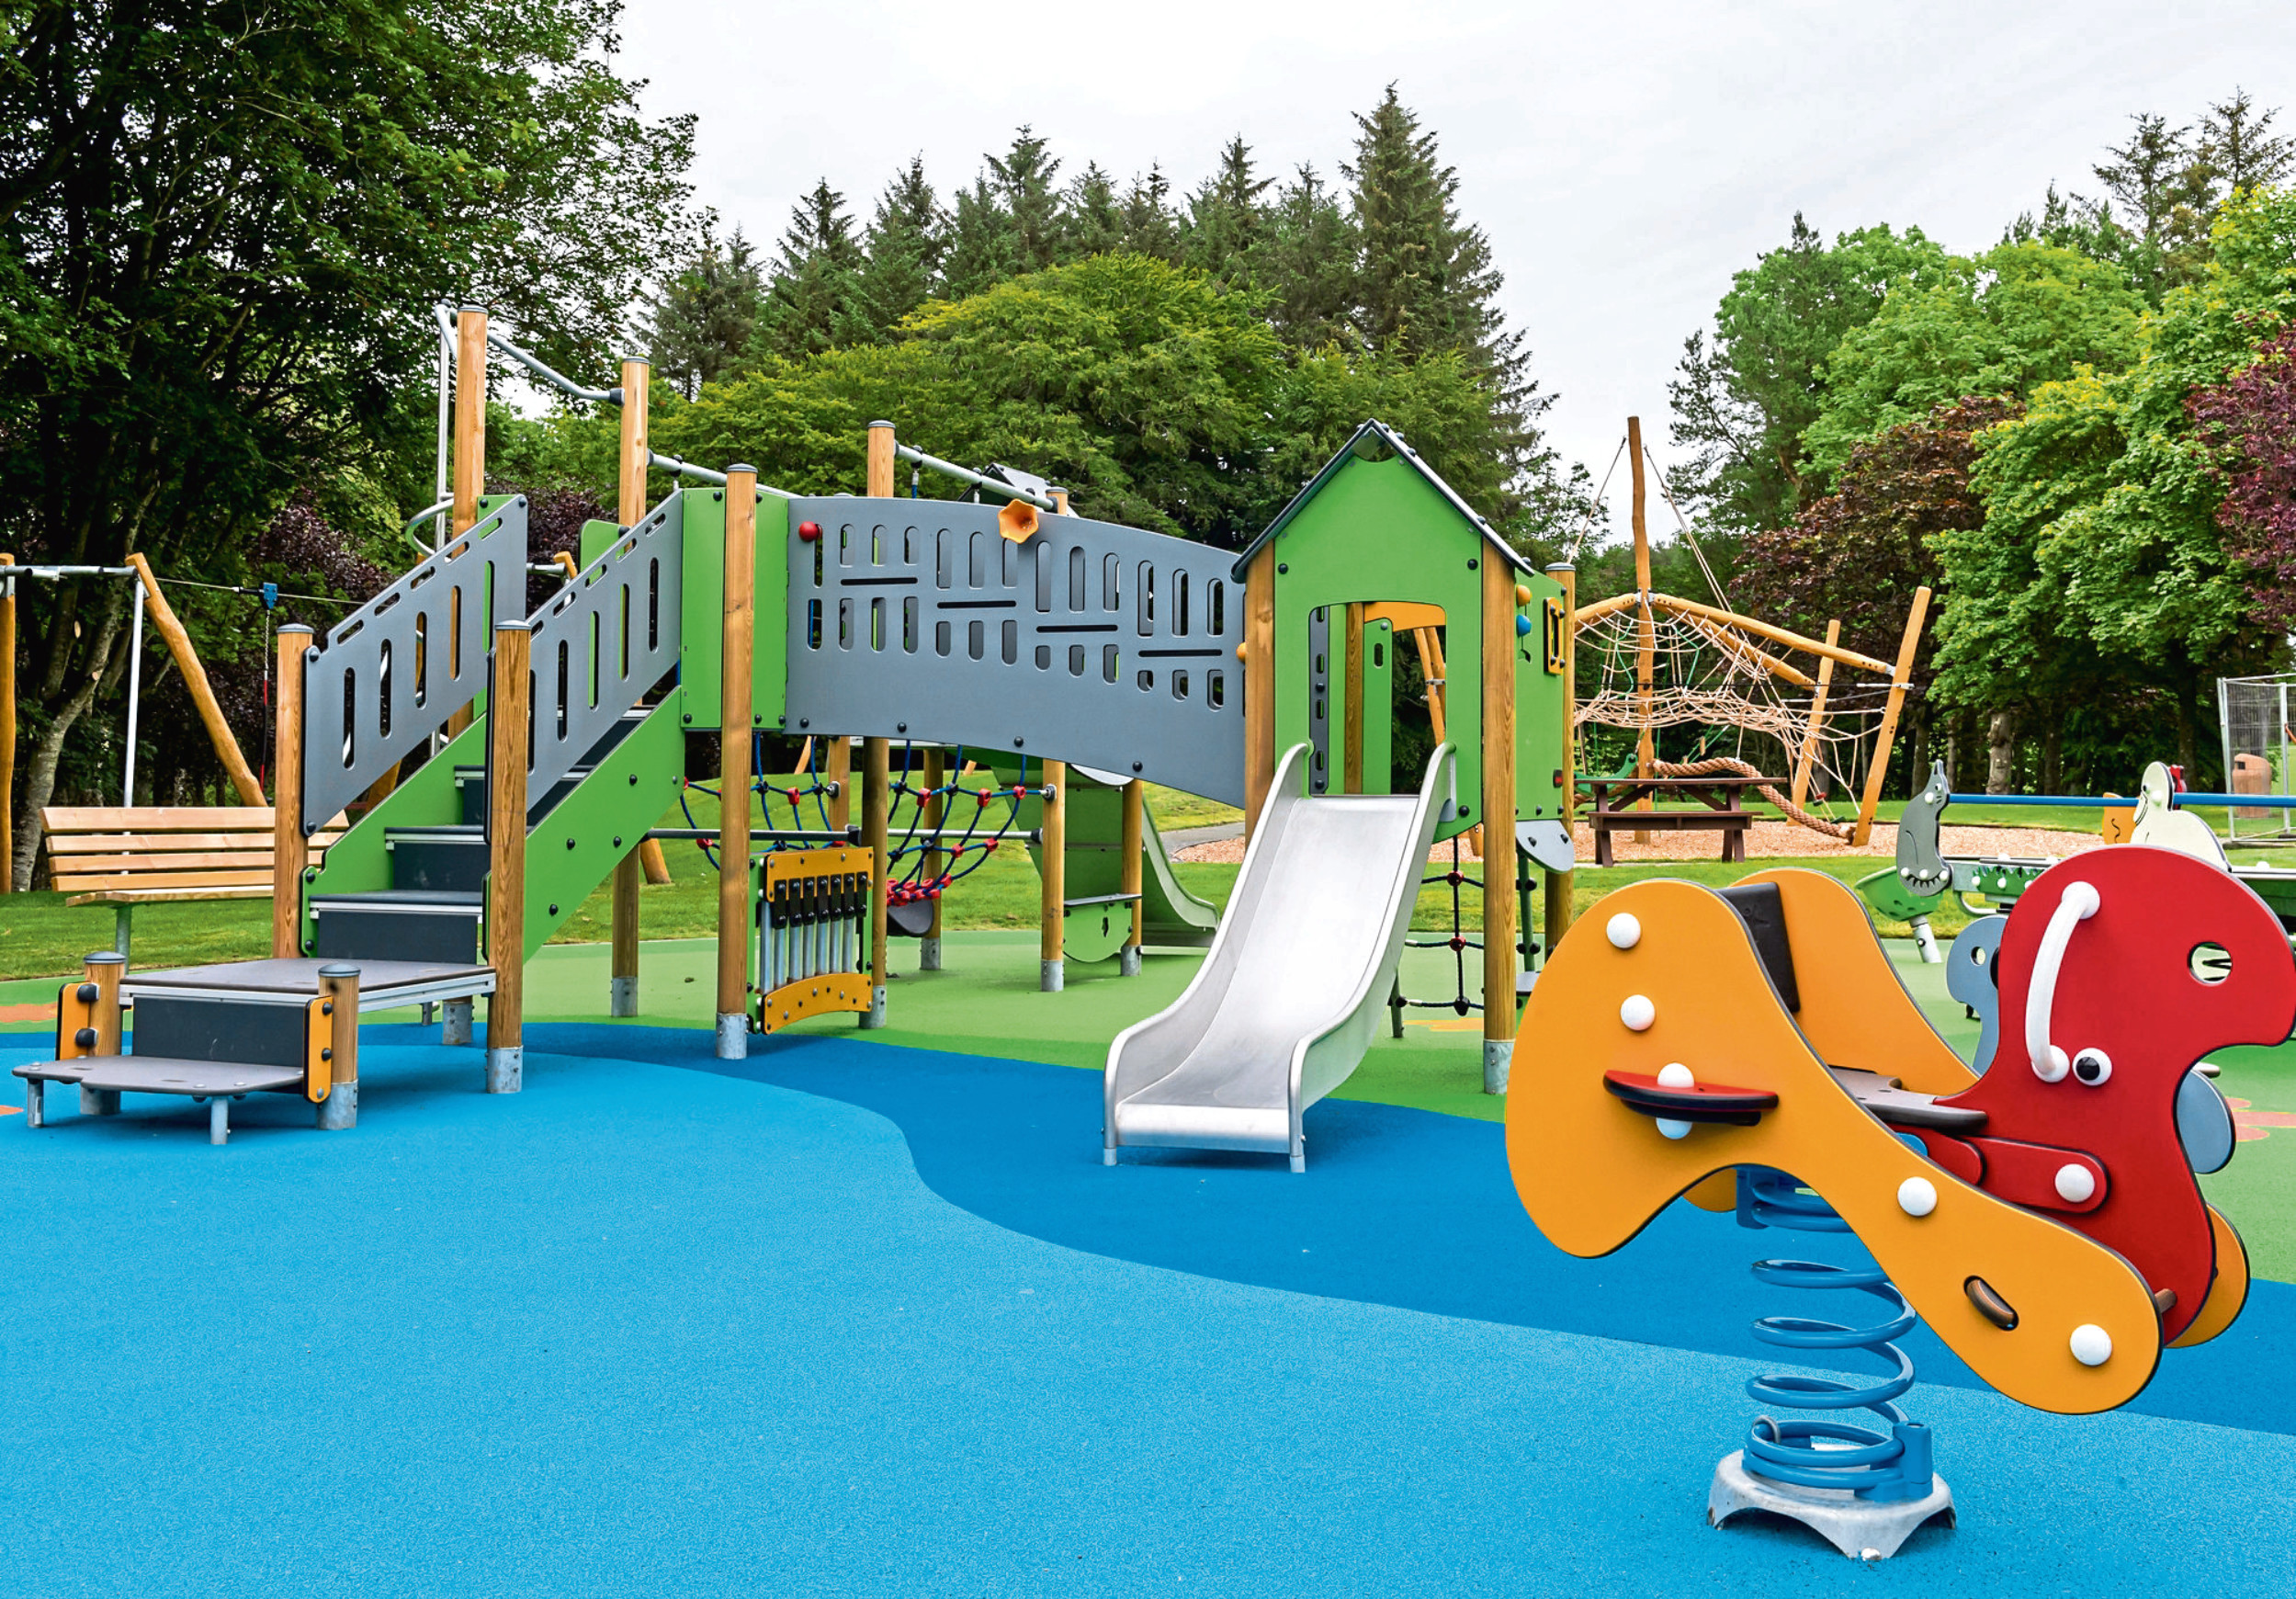 Aden Country Park's play area